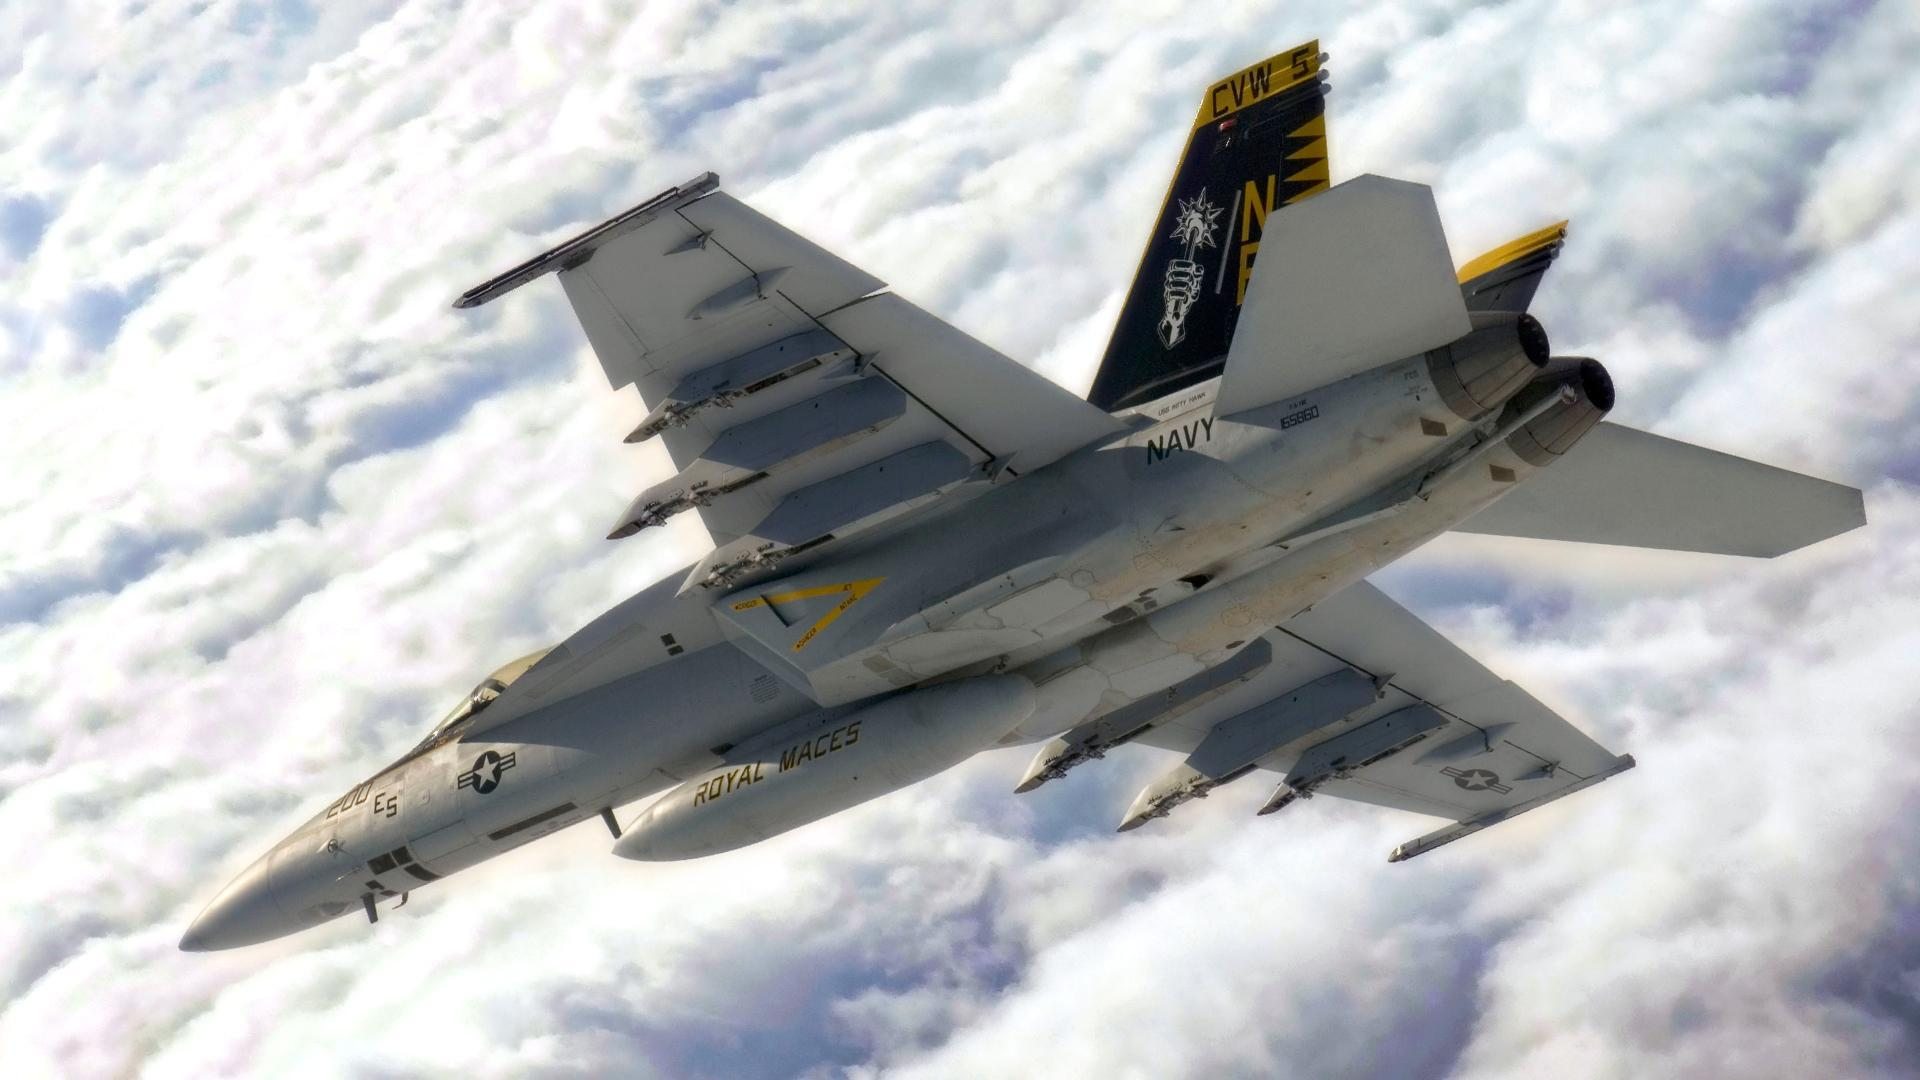 Desktop Wallpaper Hd 3d Full Screen Baby F 18 Super Hornet Hd Desktop Wallpaper Widescreen High